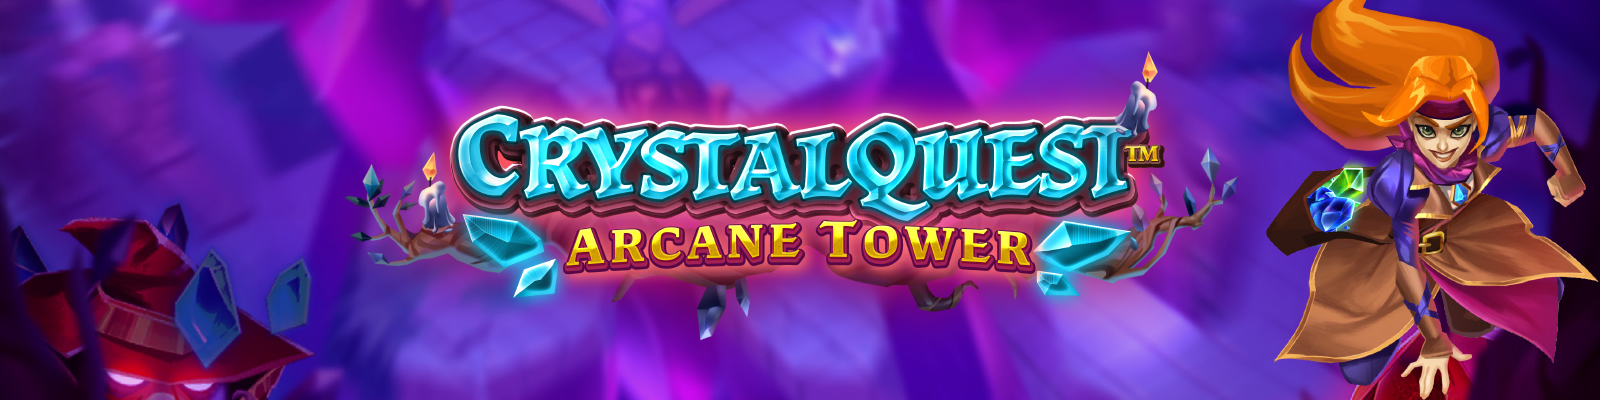 Crystal Quest: Arcane Tower from Thunderkick